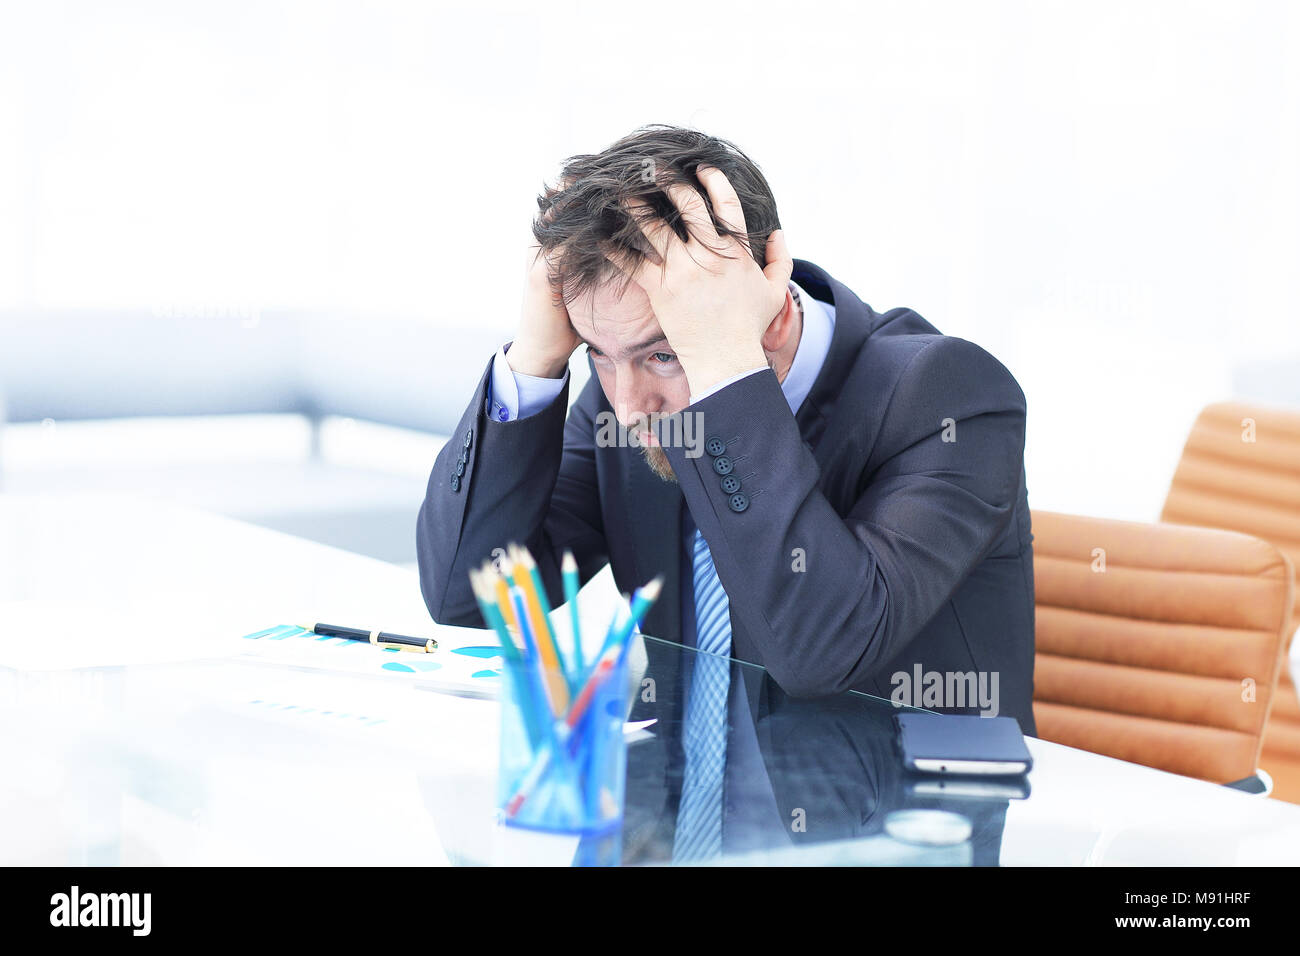 Tired business man at workplace in office holding his head on hands. Sleepy worker early in the morning after late night work. Overworking, making mistake, stress, termination or depression concept - Stock Image